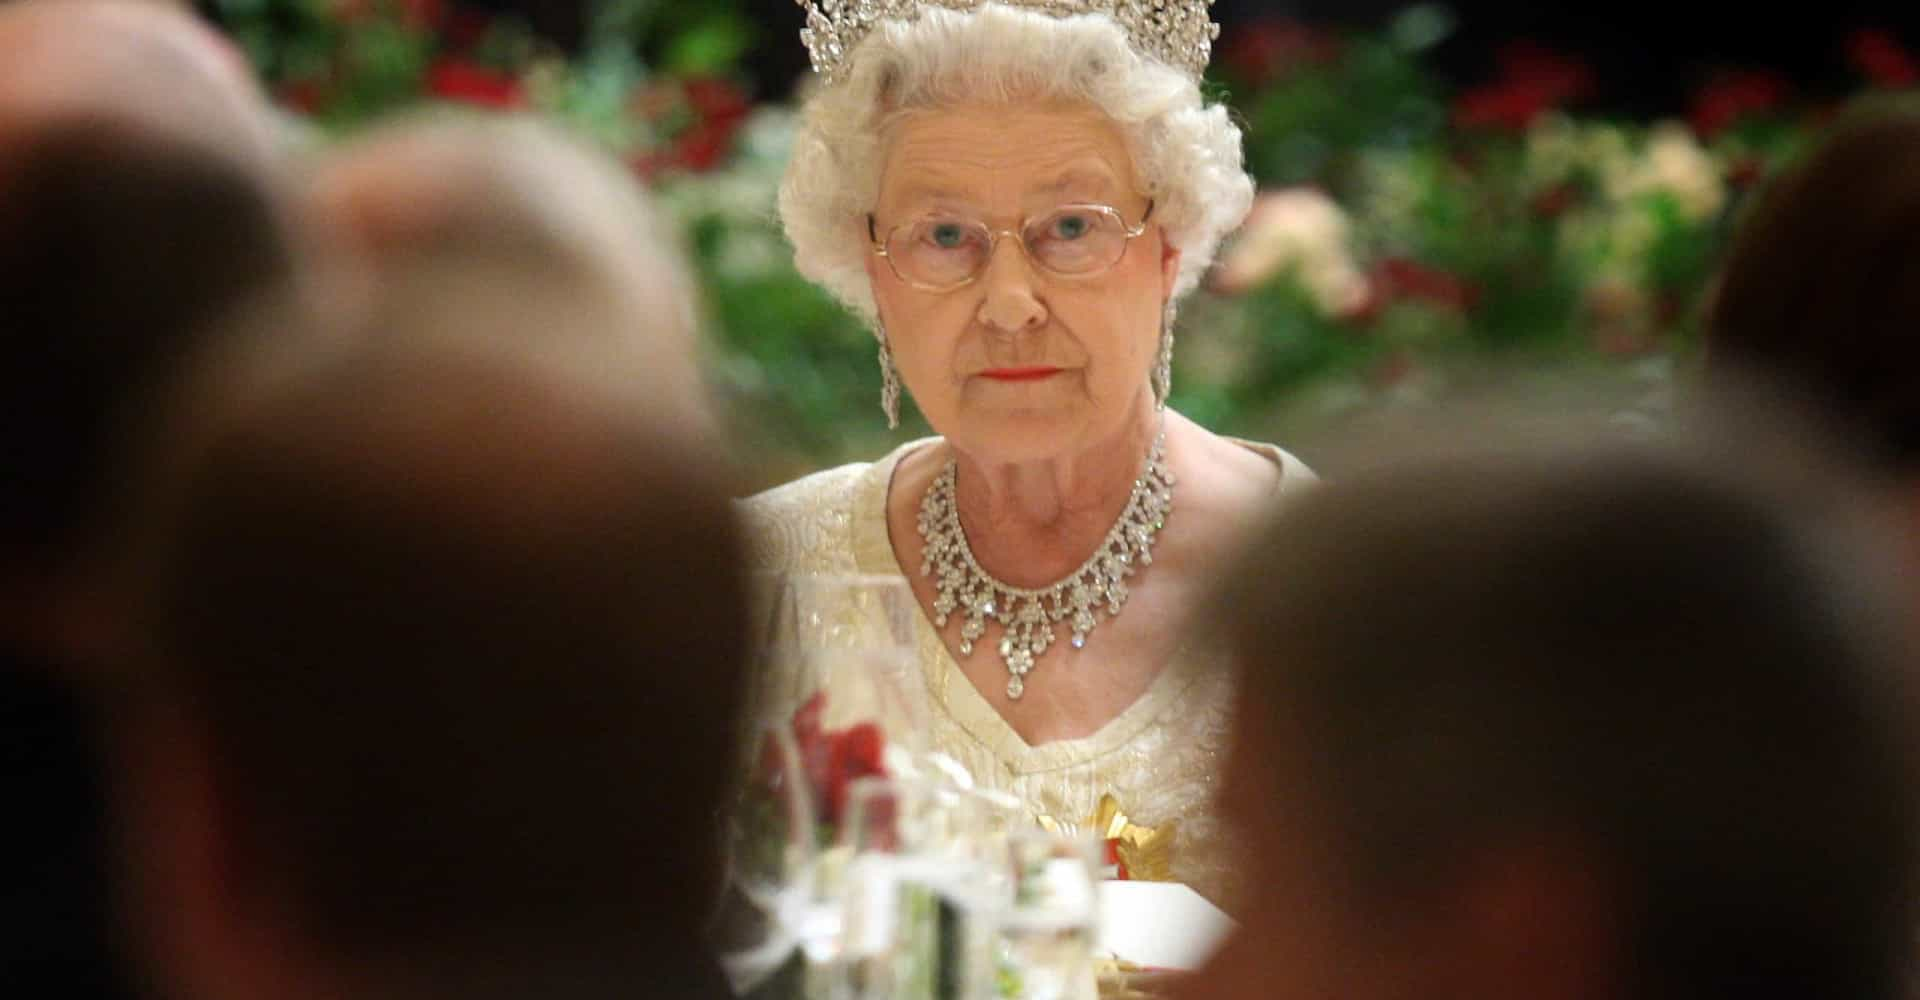 The forbidden foods of Queen Elizabeth